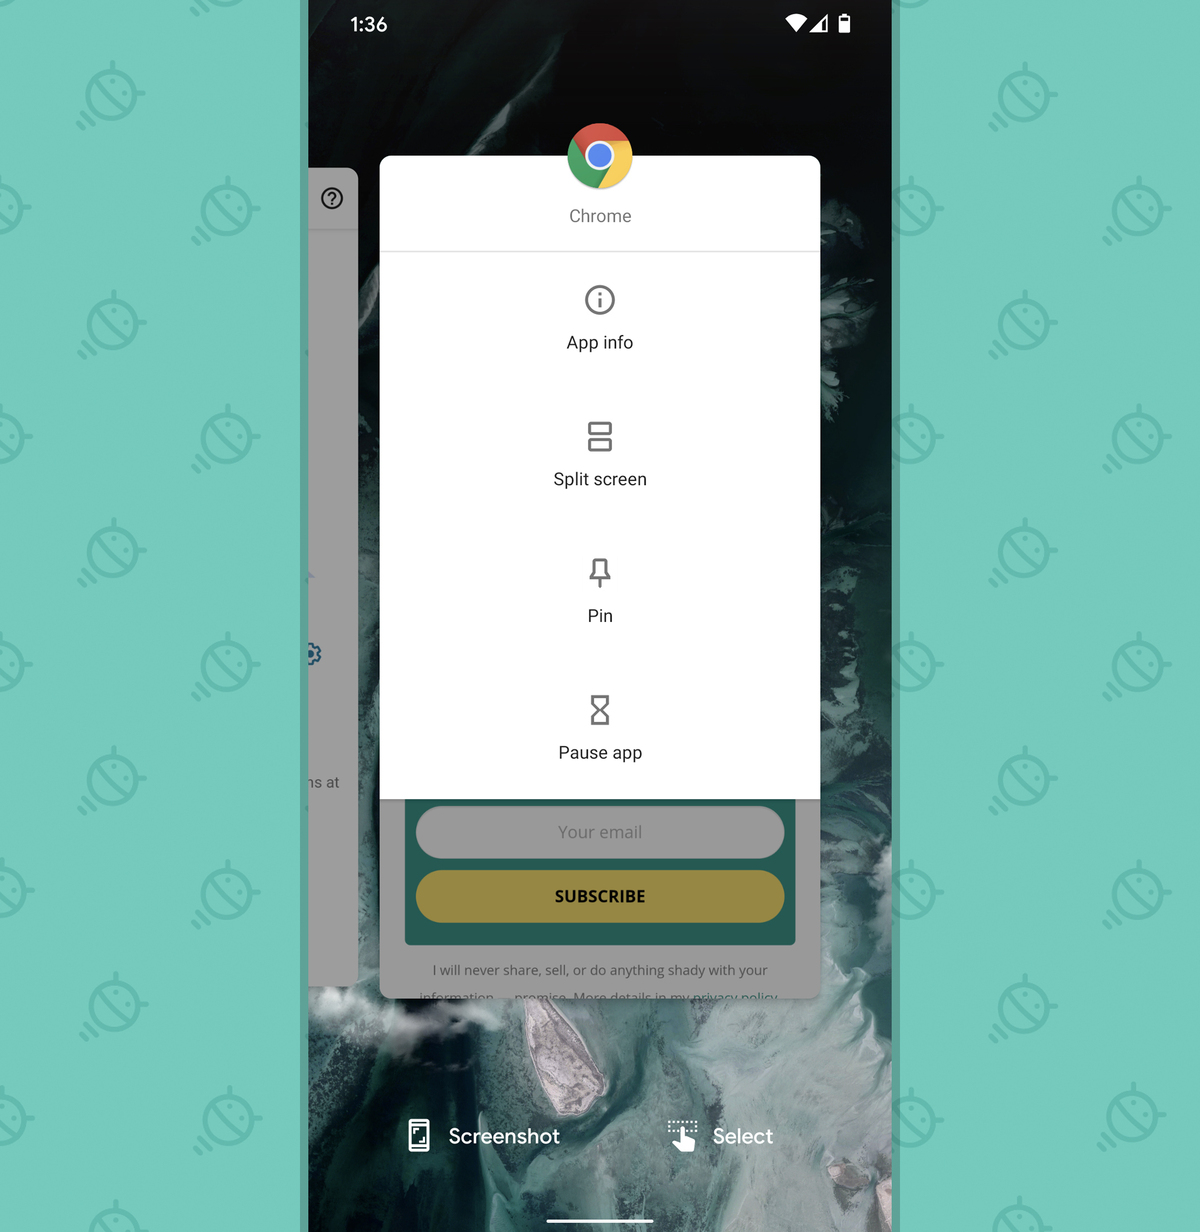 Android Security Settings: App pinning